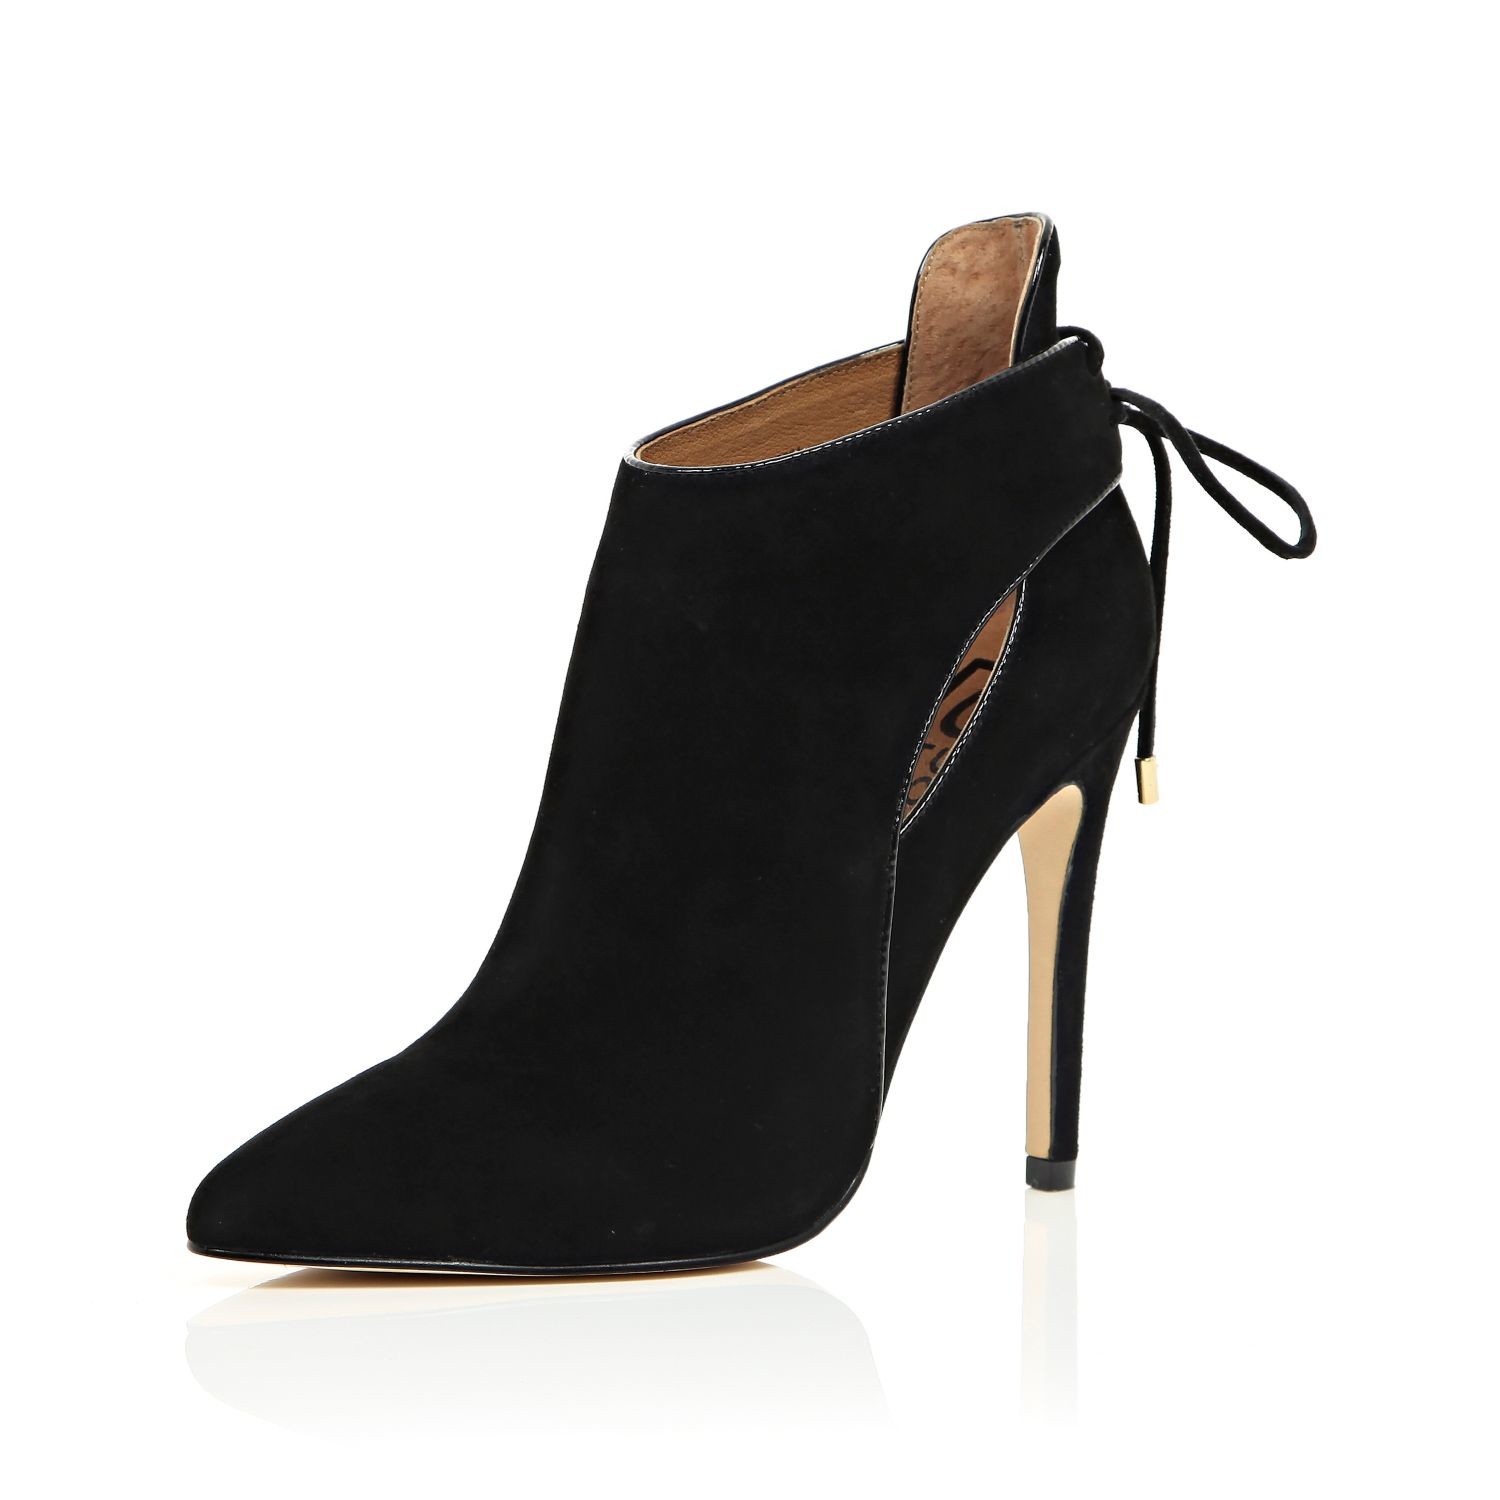 River island Black Ri Studio Suede Tie Back Ankle Boots in Black